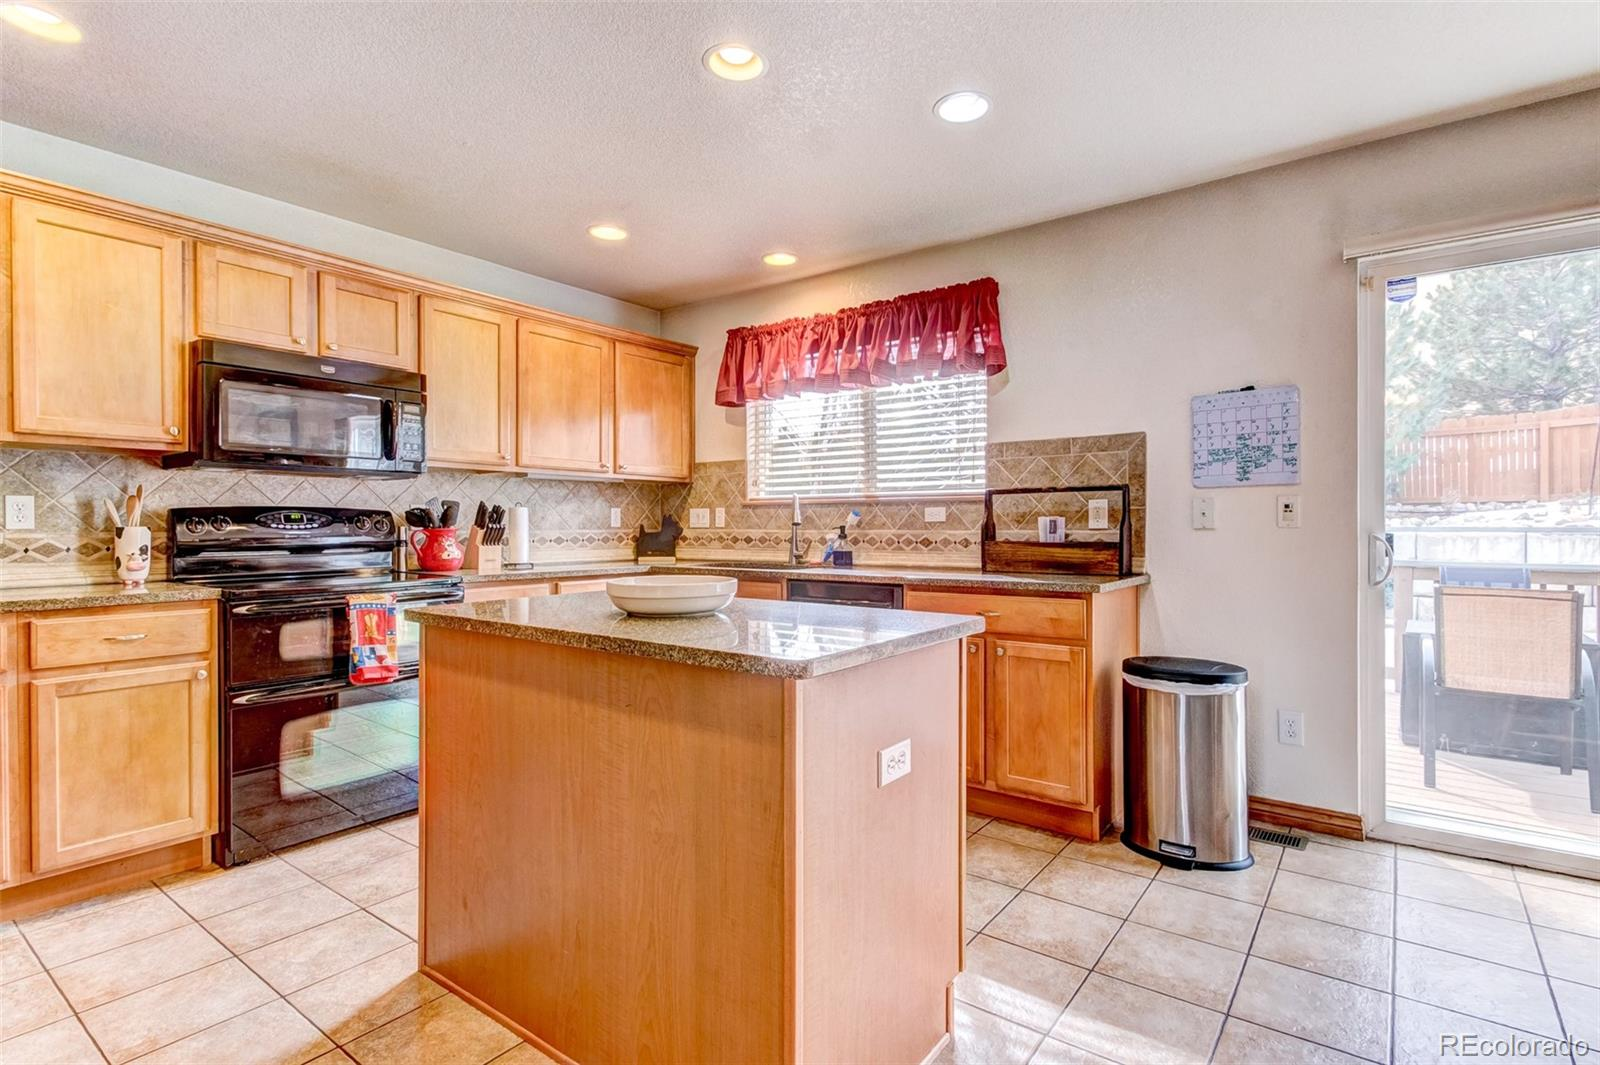 MLS# 8444903 - 6 - 7647 Bentwater Drive, Fountain, CO 80817